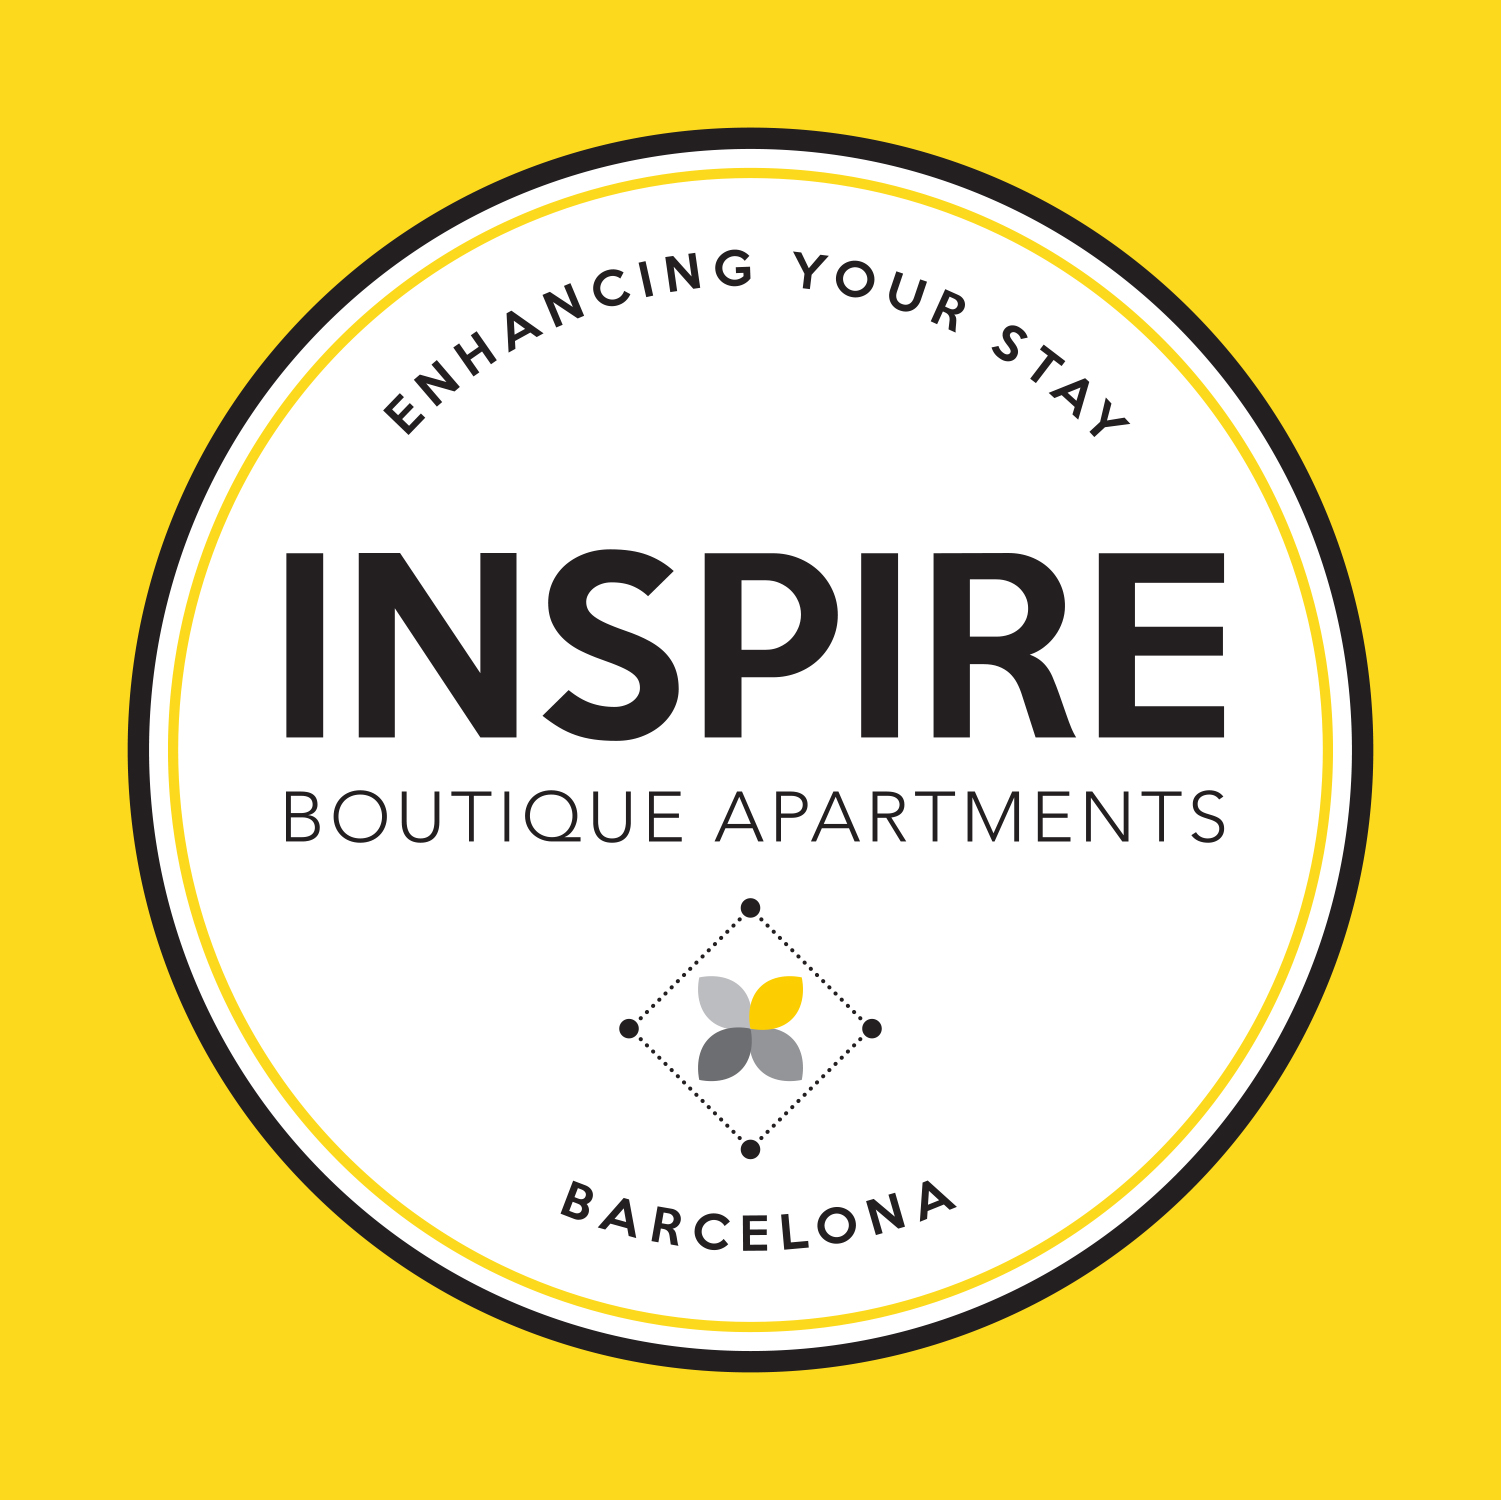 Inspire Boutique Apartments, vastgoed Barcelona